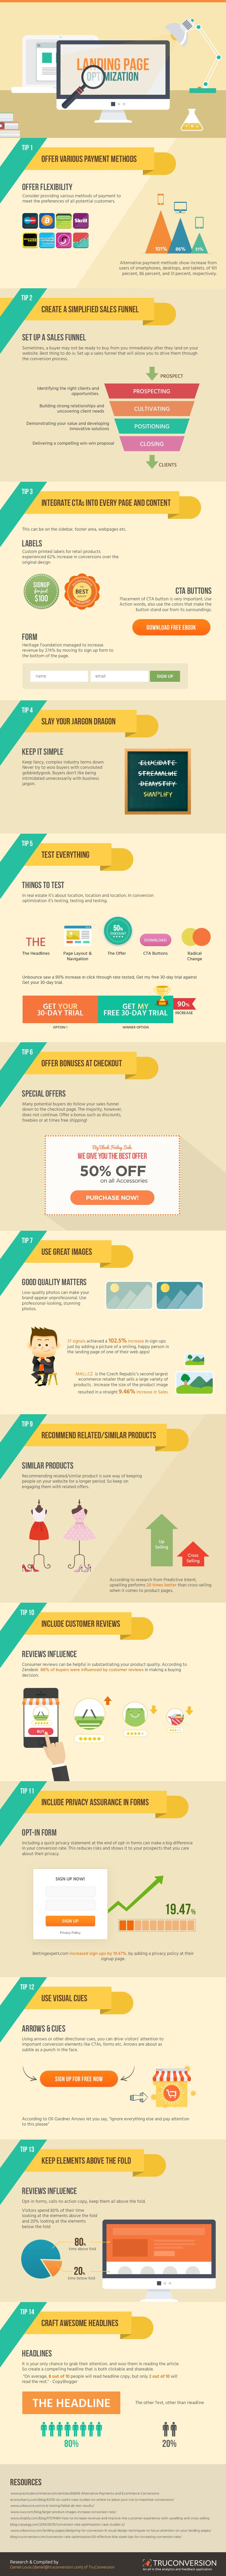 Here is an infographic by TruConversion that examines reasons for high bounce rates and provides 14 tips to make your landing page more effective and shoot up your conversions the roof.